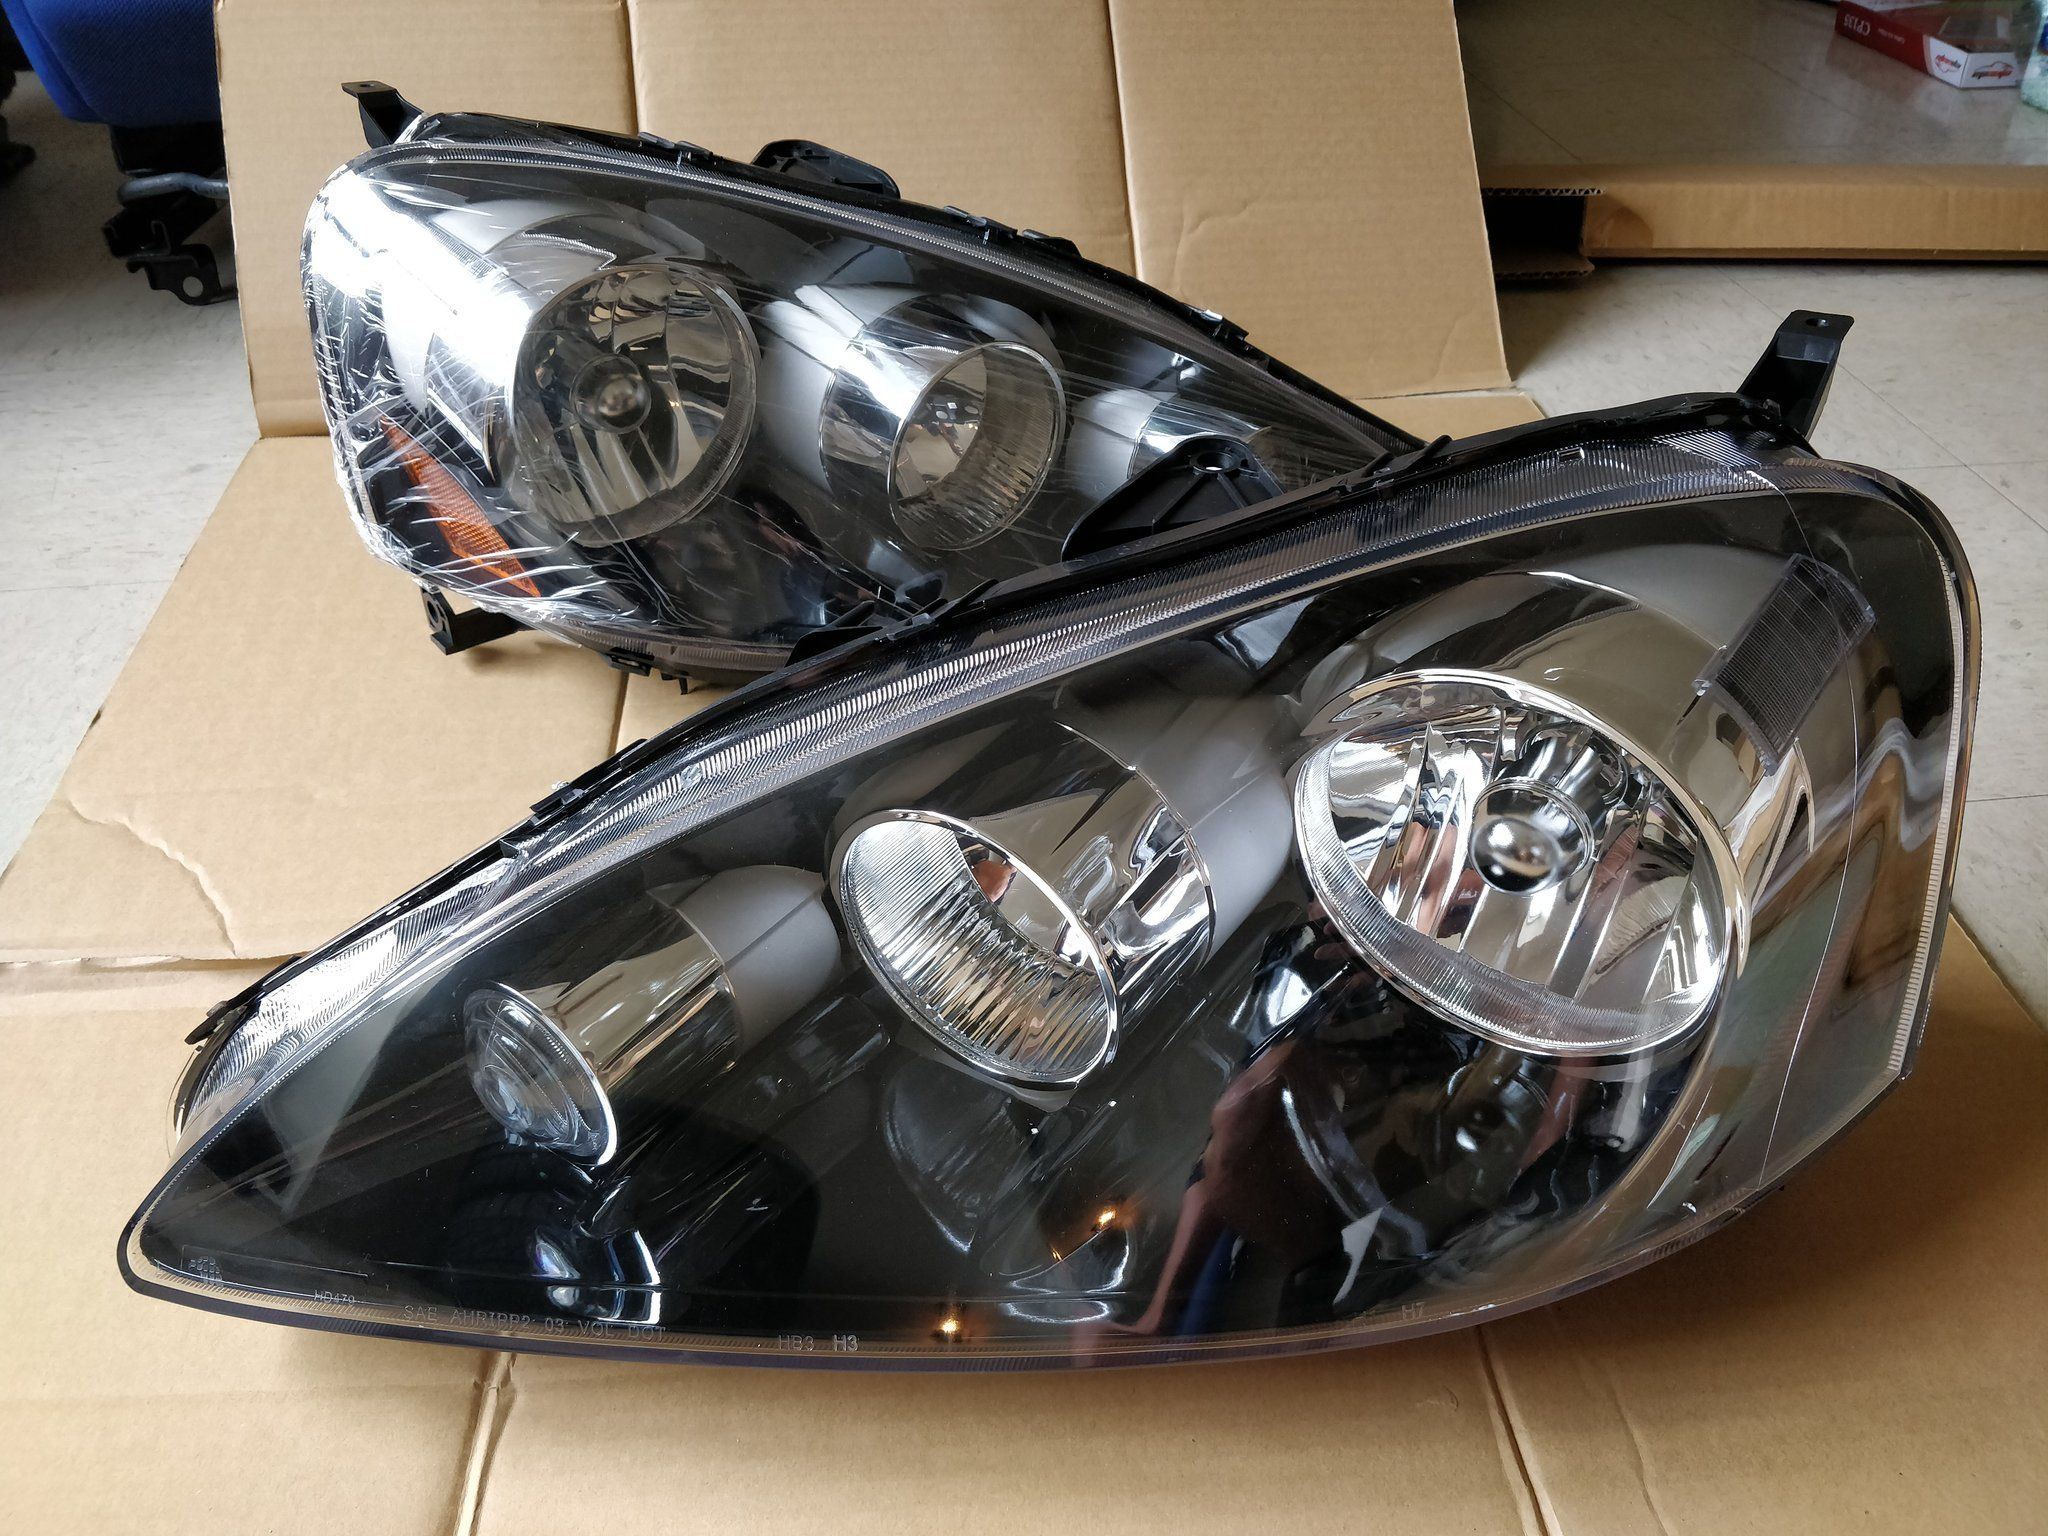 2005 06 Acura RSX OEM Replacement Headlights BRAND NEW – DC5R Parts